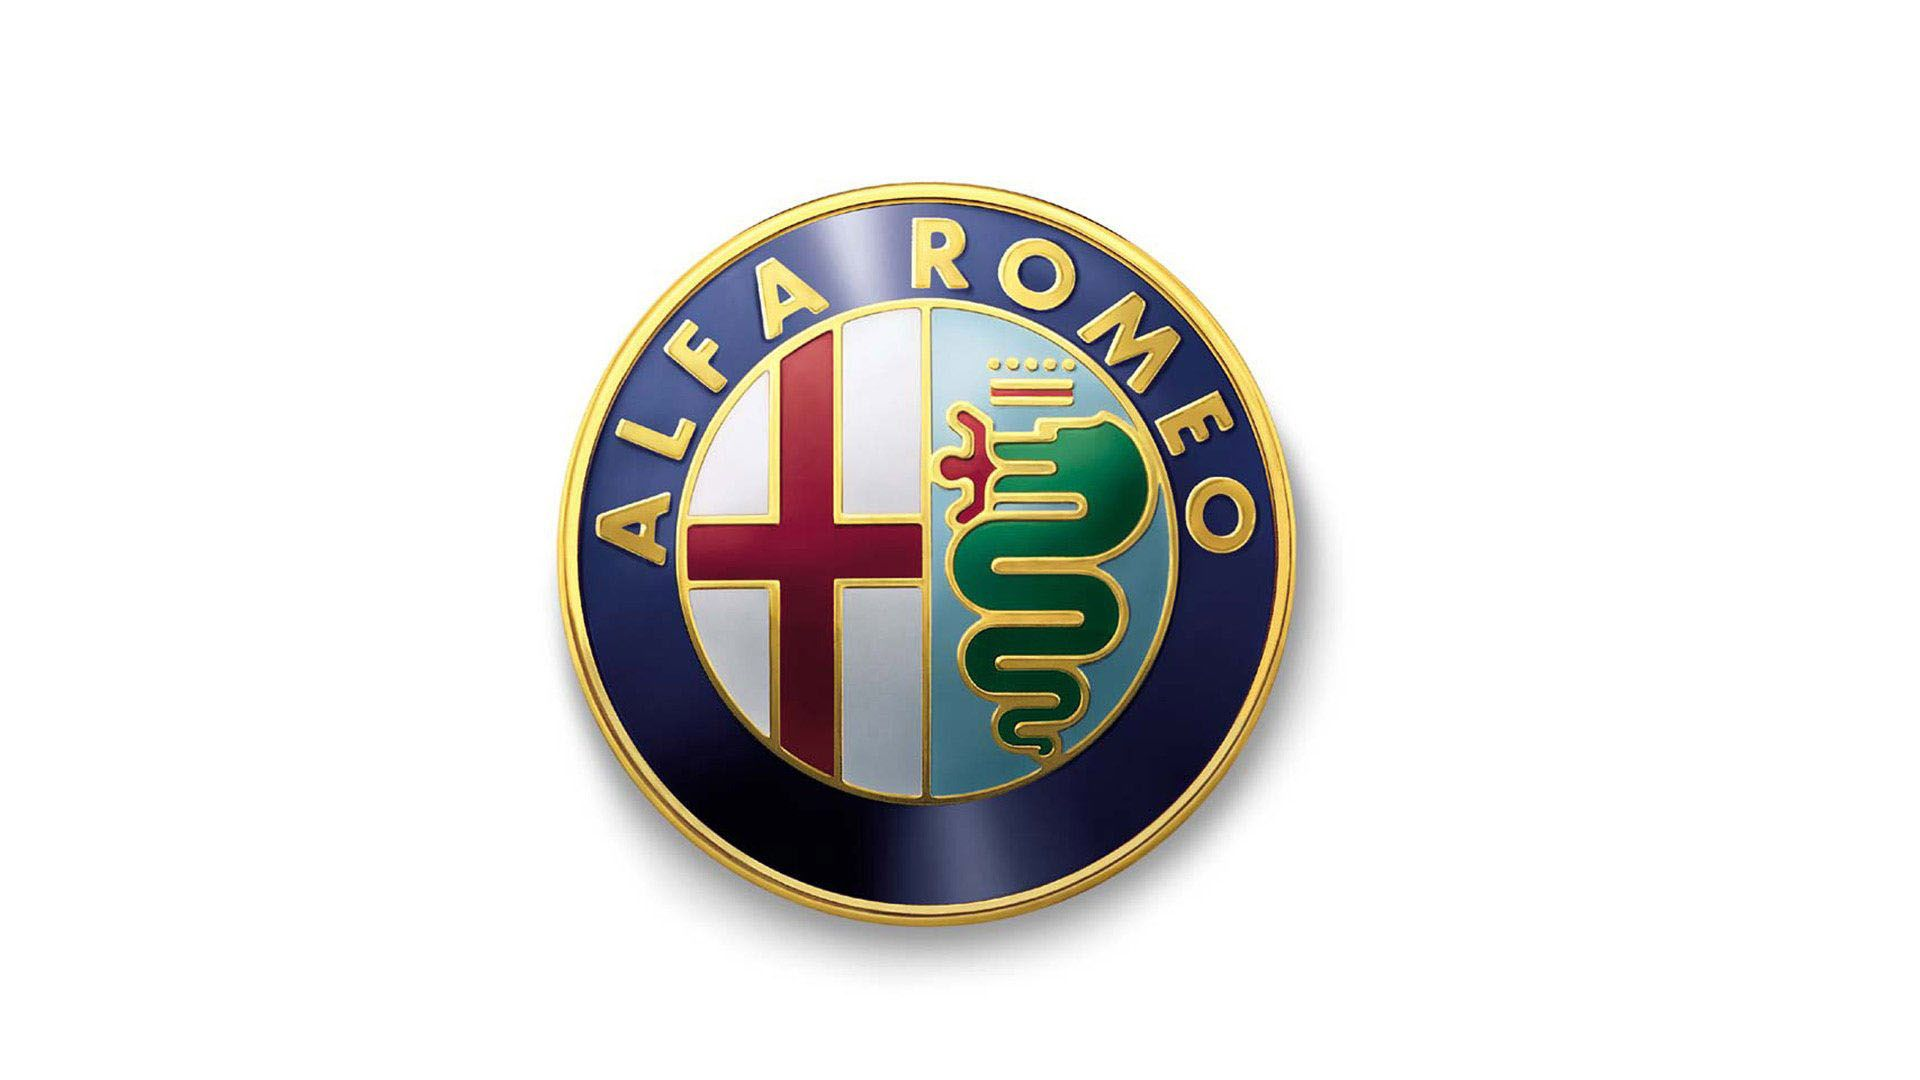 Alfa Romeo Bella Wallpapers HD Photos, Wallpapers and other Image